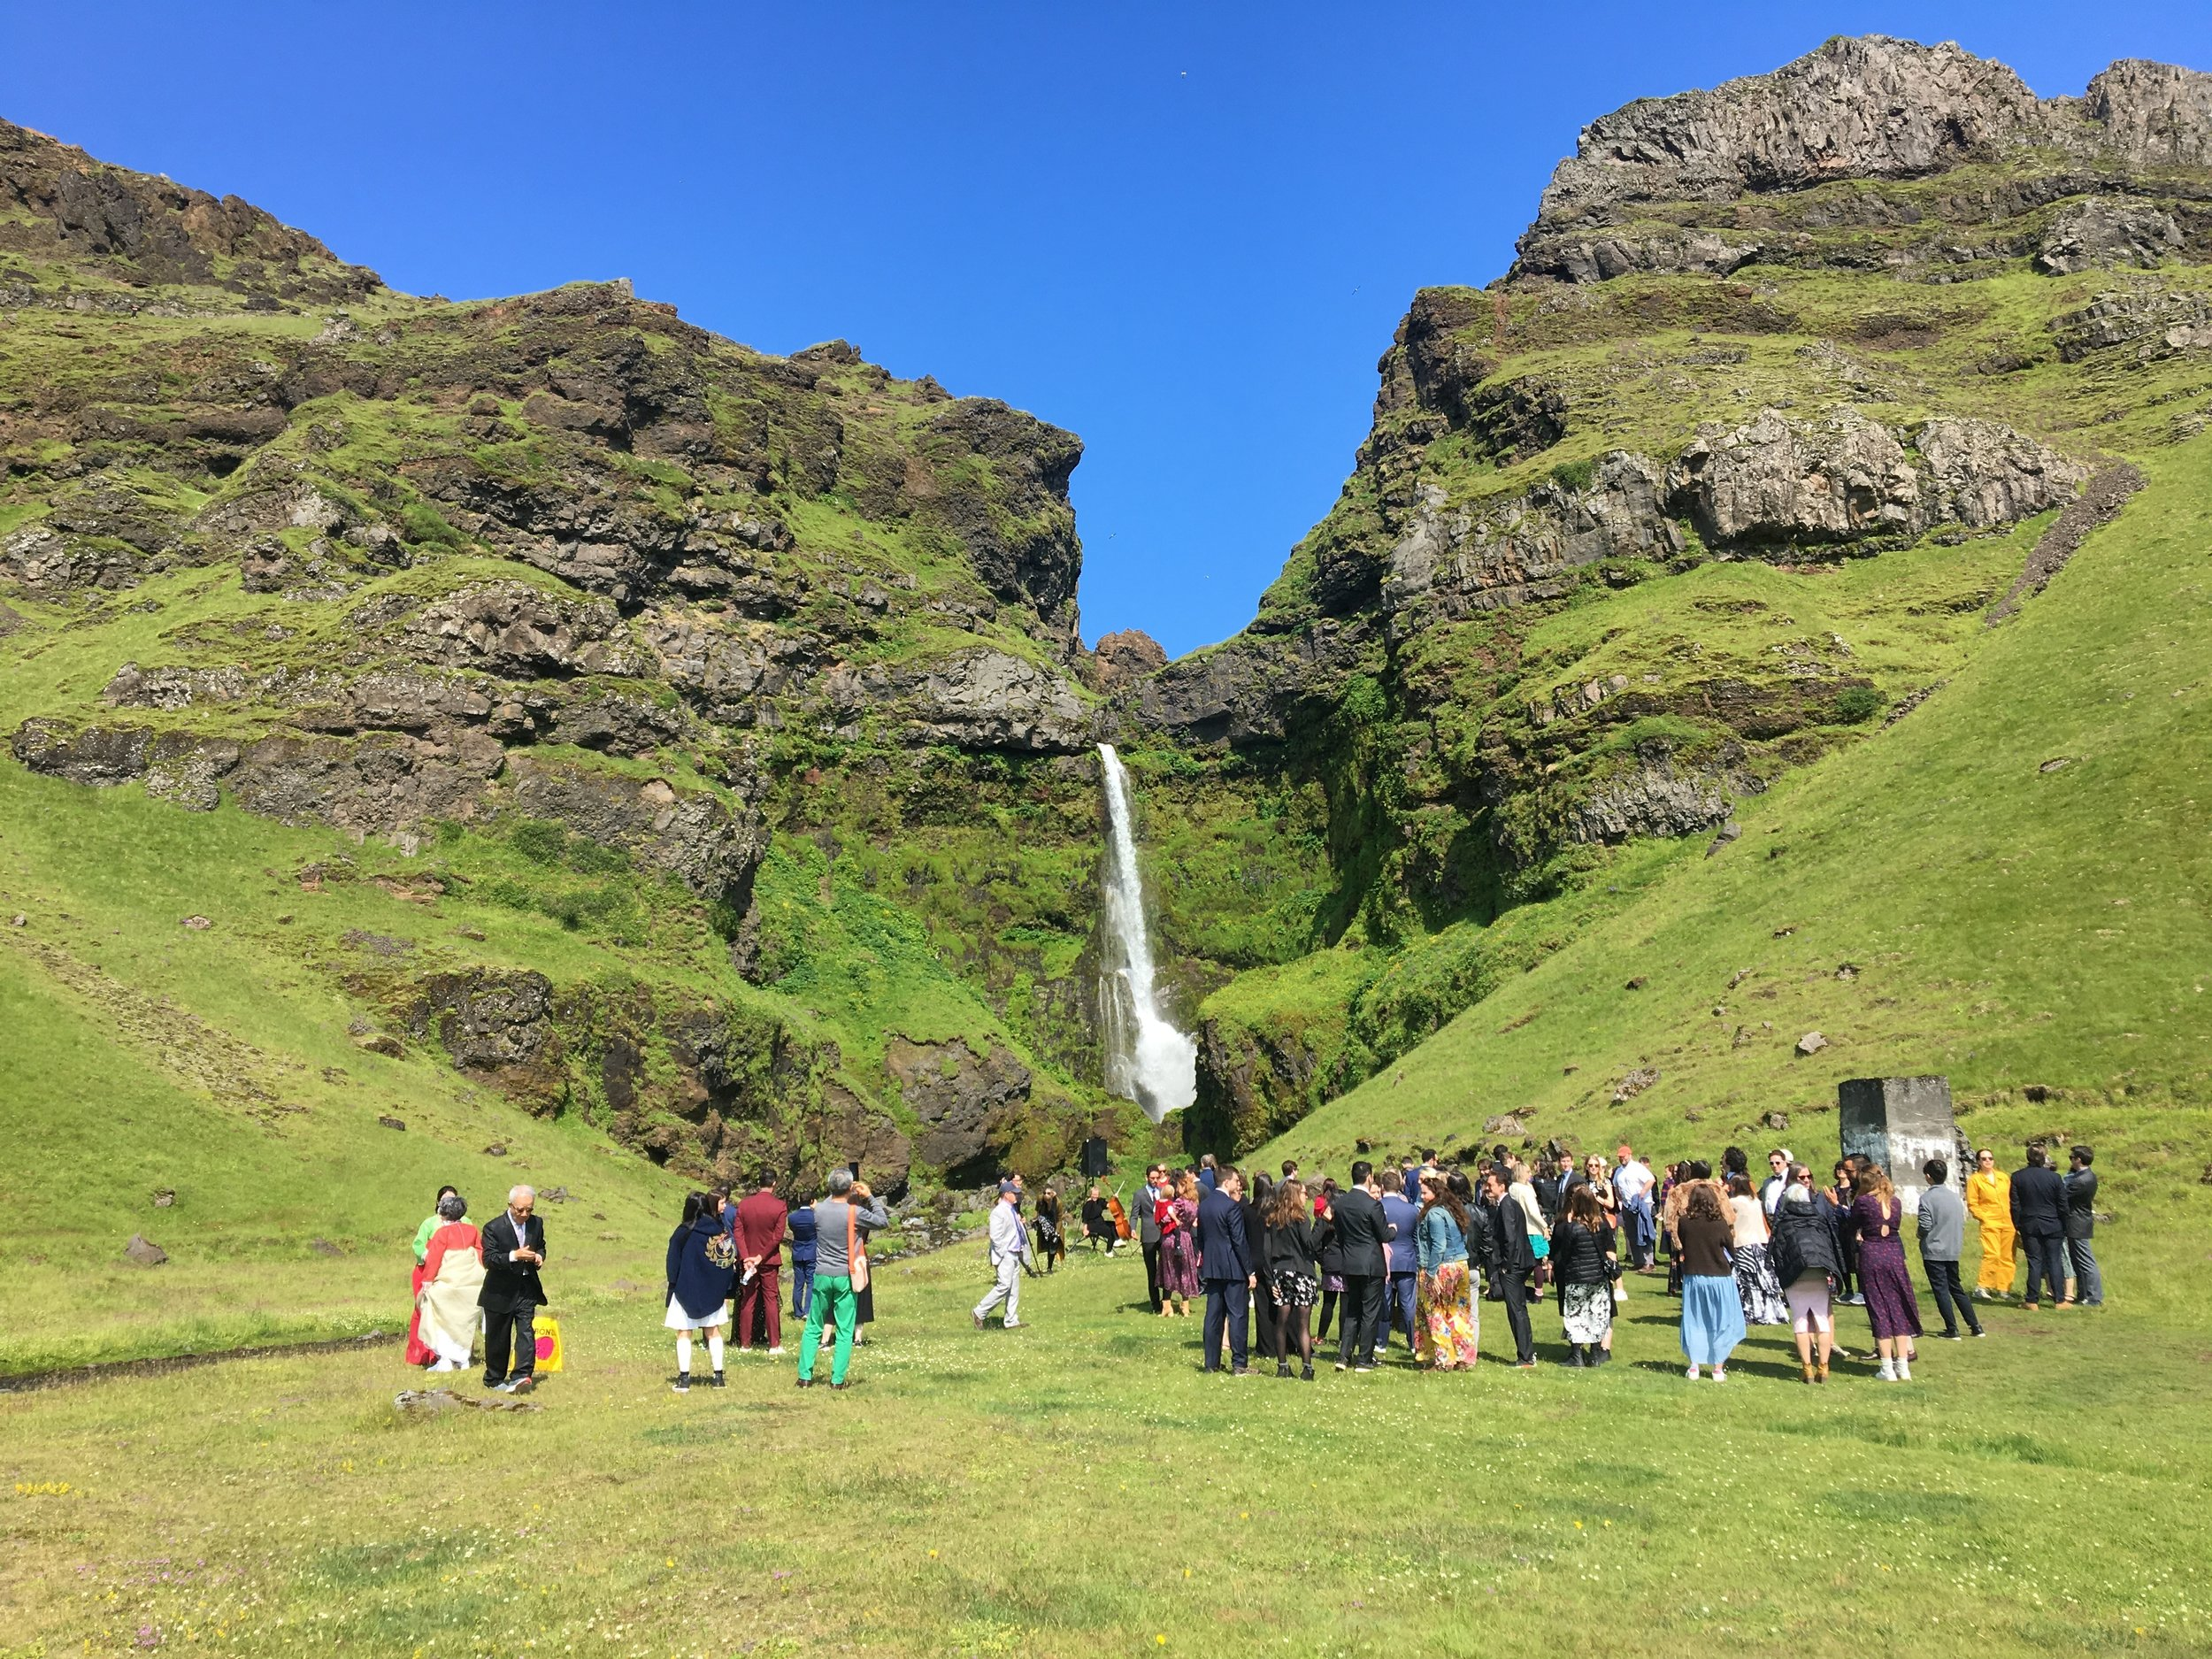 The waterfall in Iceland where my brother and his wife were married